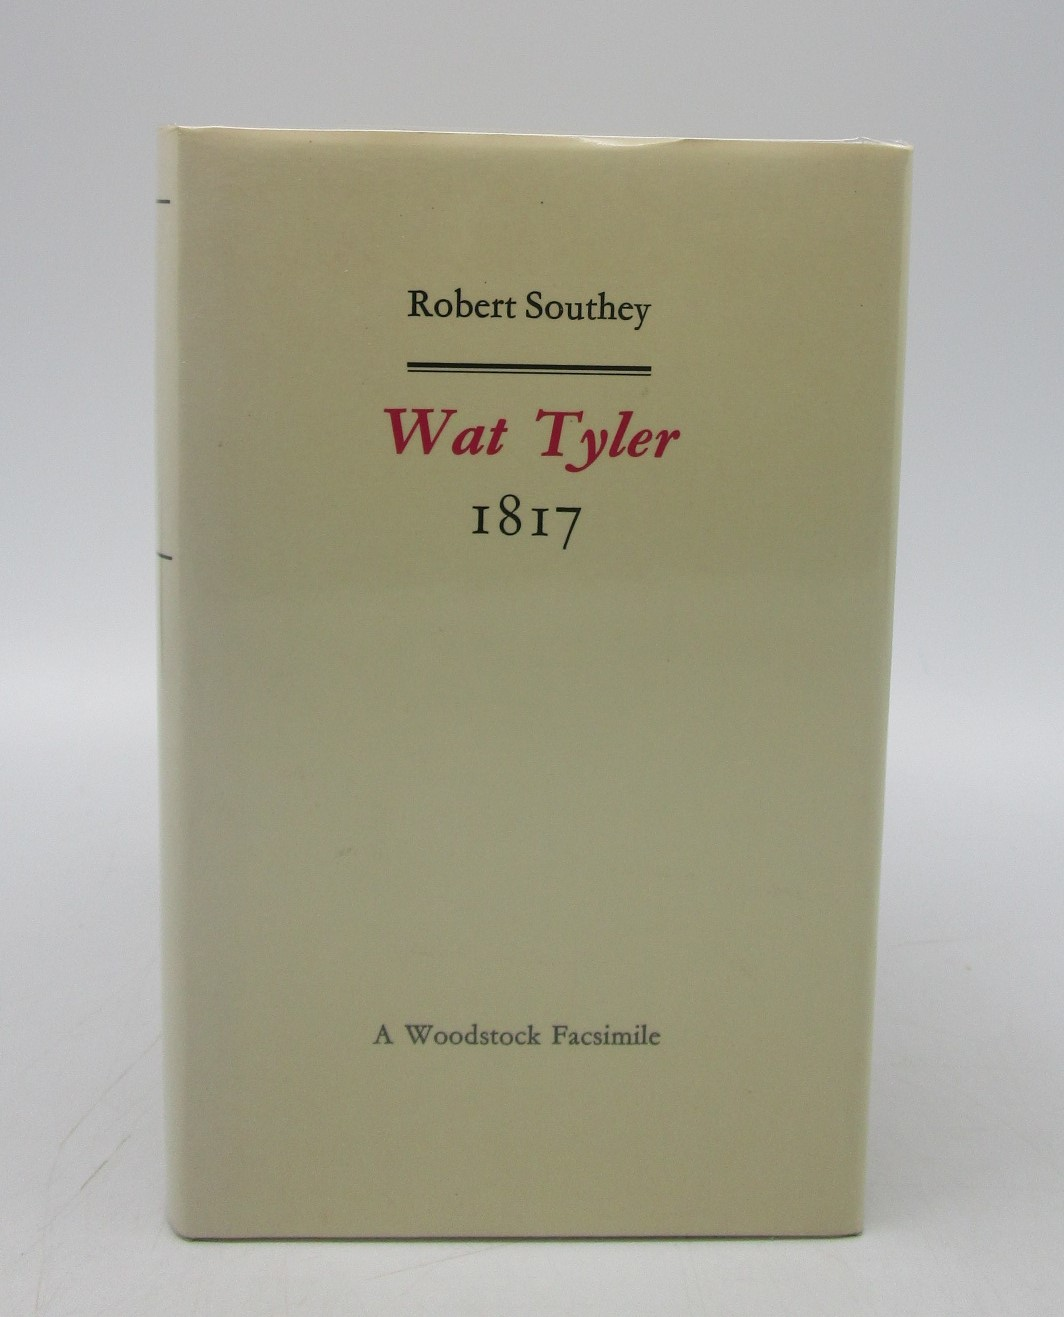 Image for Wat Tyler: A Dramatic Poerm 1817 (Revolution and Romanticism, 1789-1834)